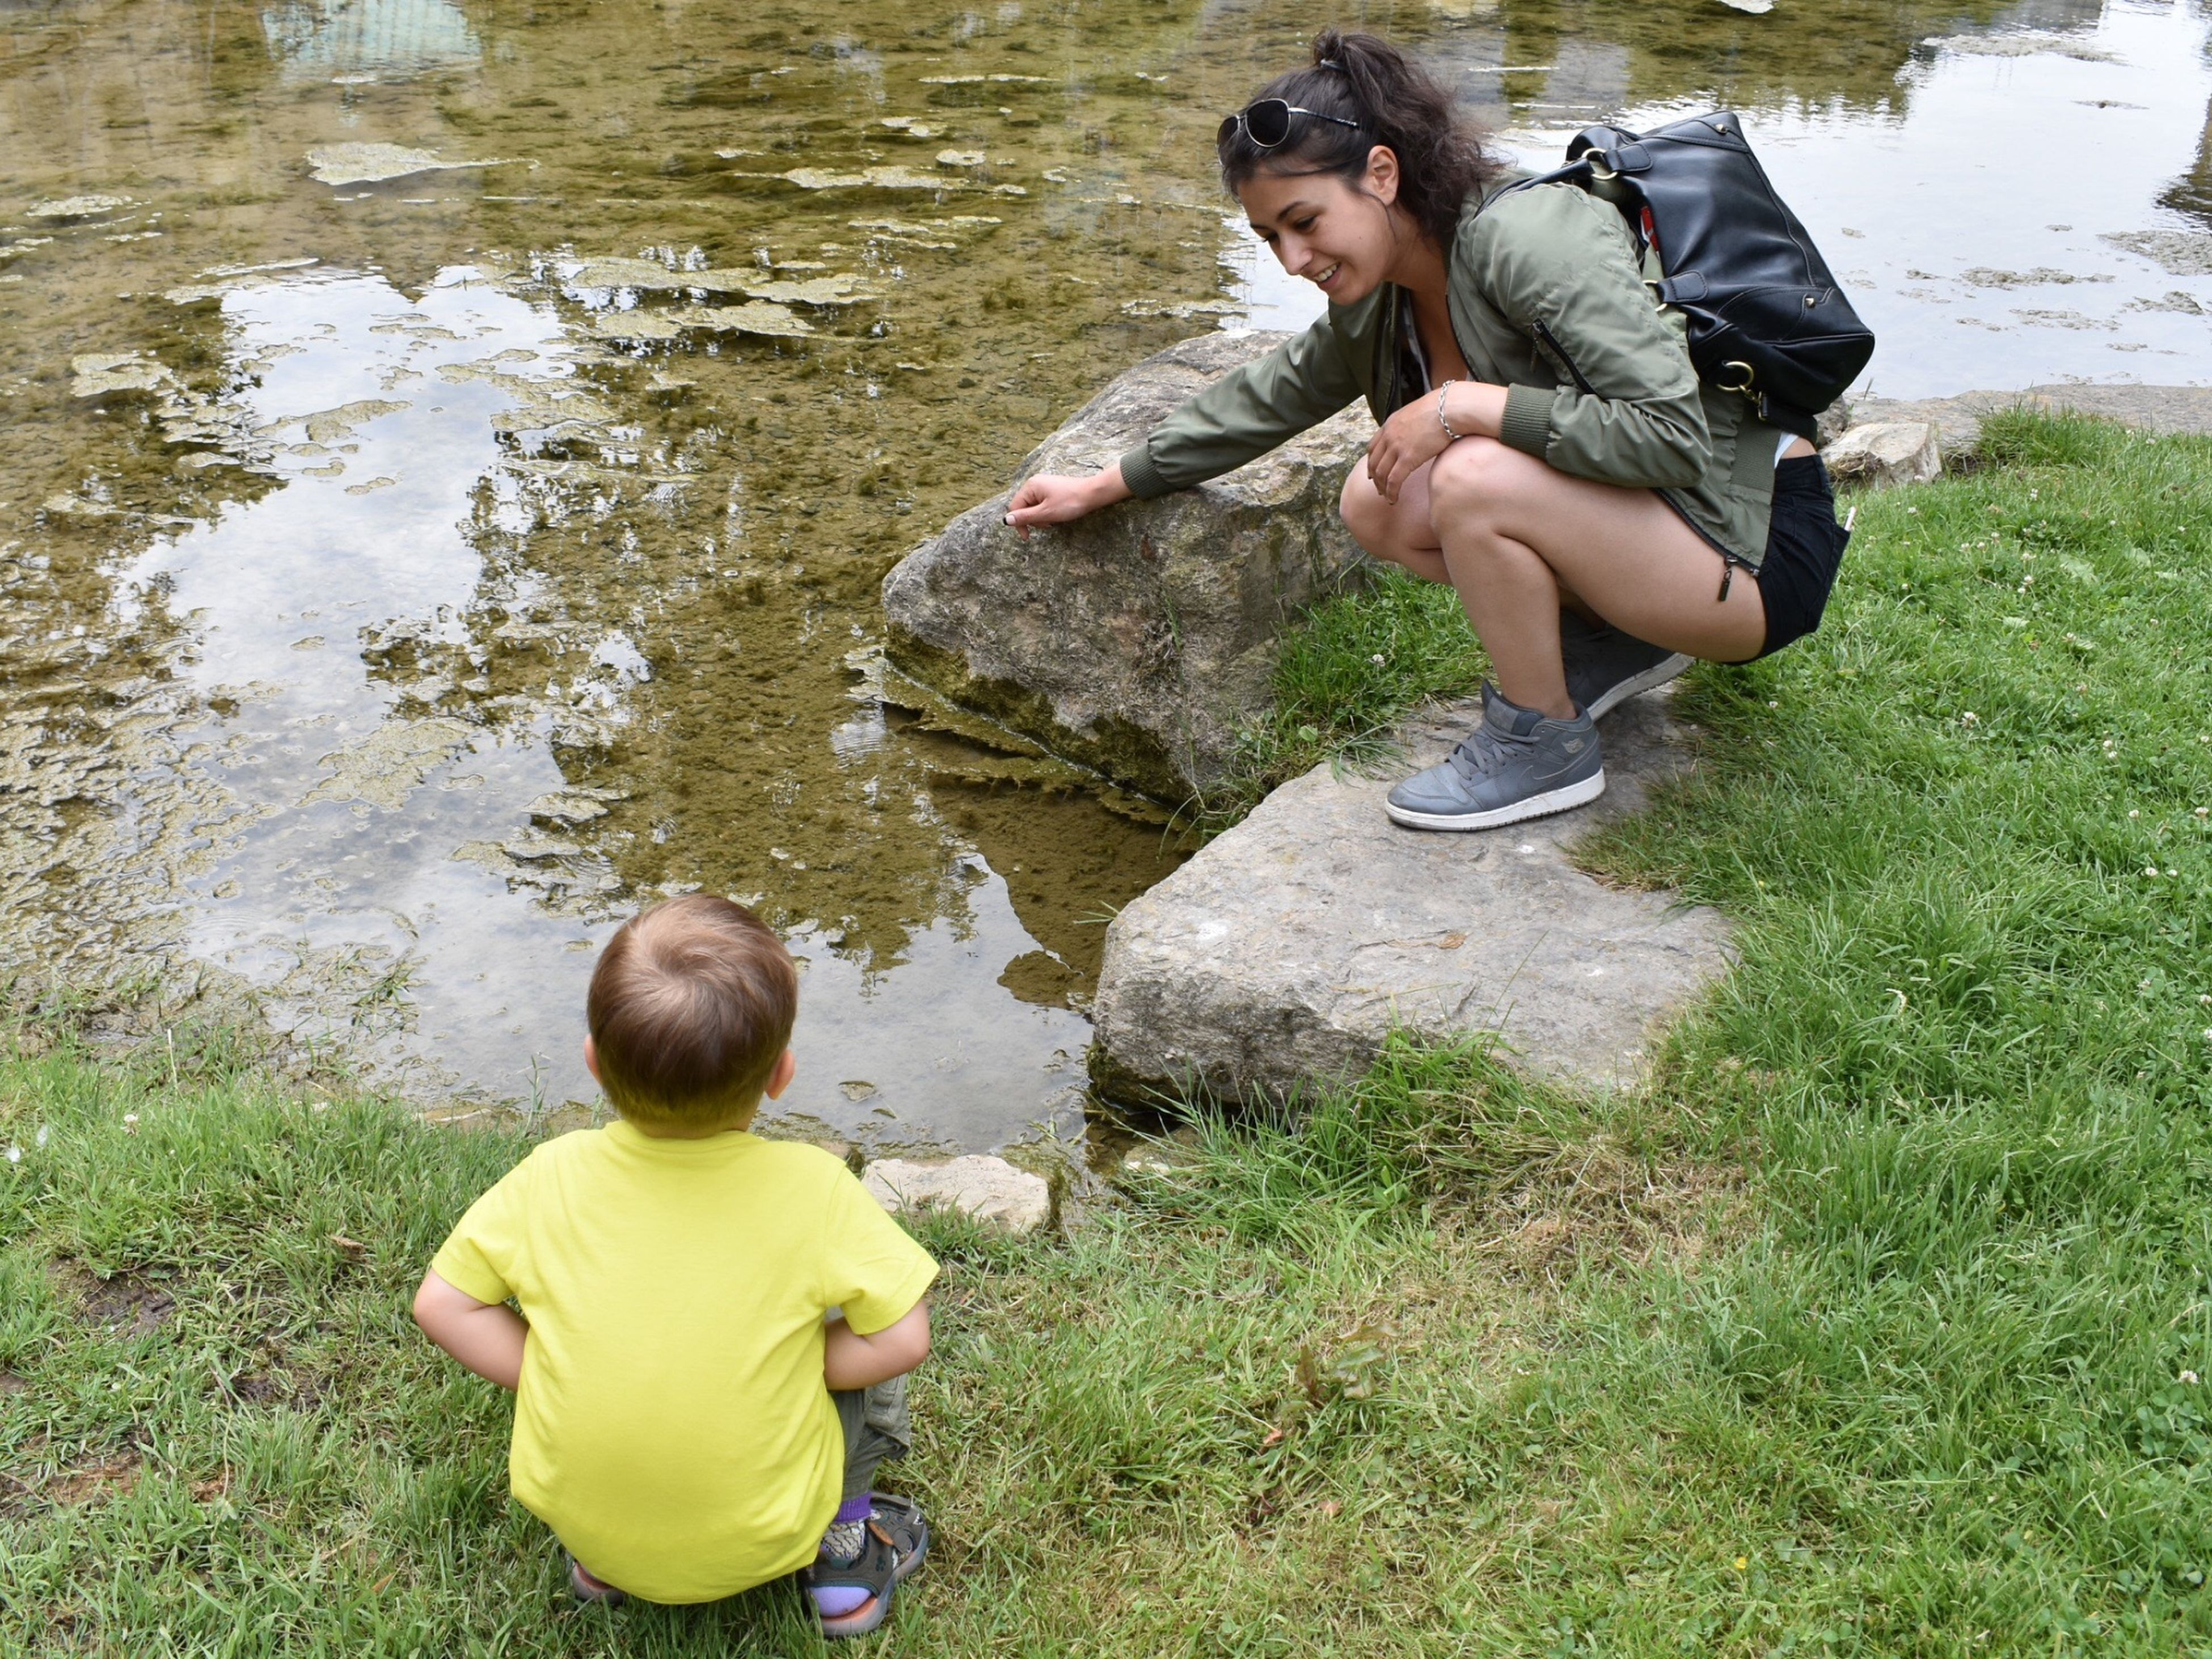 childhood, two people, real people, water, casual clothing, day, rock - object, full length, outdoors, boys, lake, leisure activity, togetherness, crouching, nature, grass, animal themes, people, adult